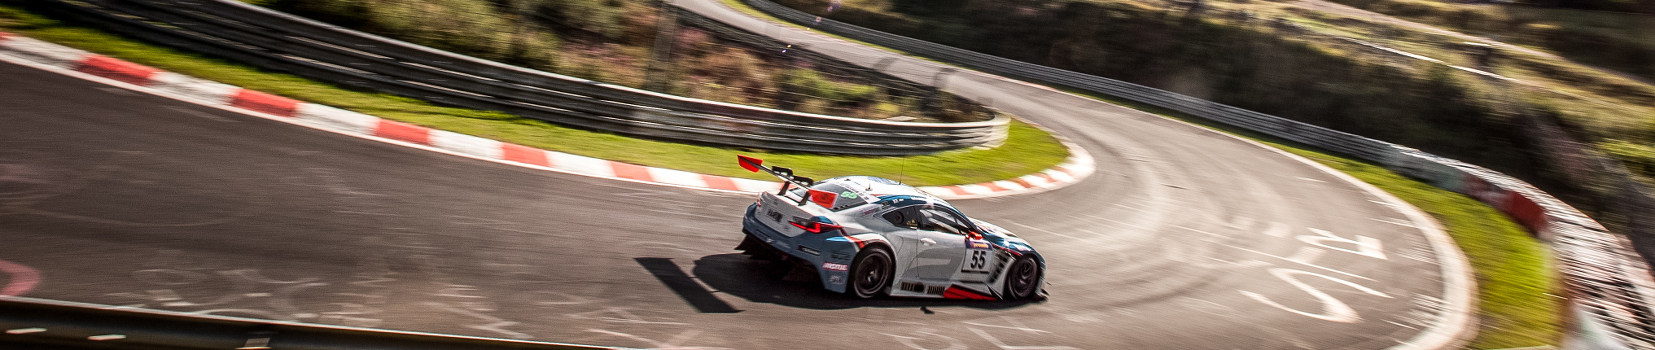 Farnbacher Racing Lexus RC F GT3